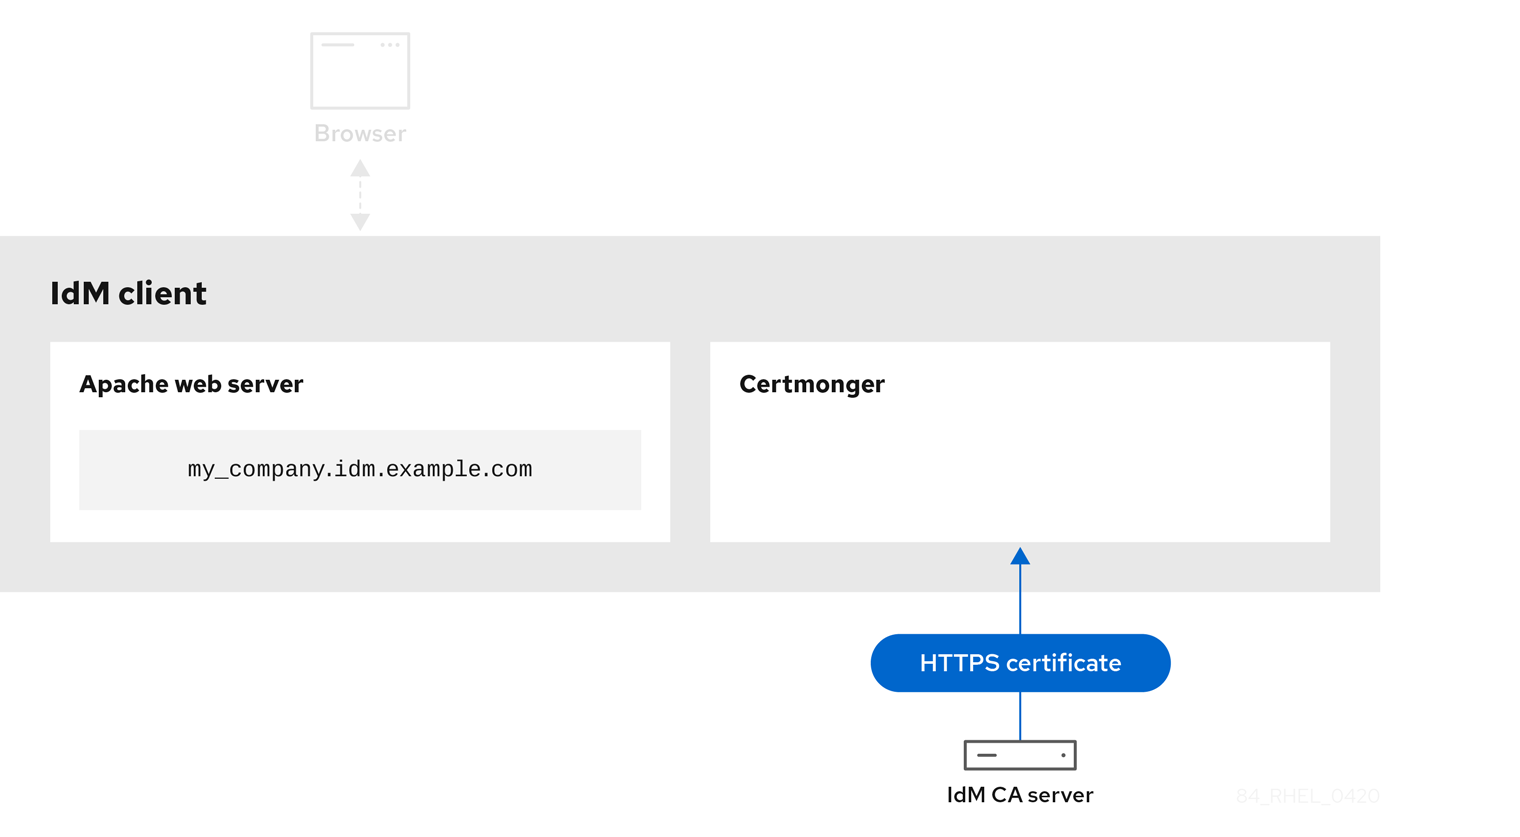 A diagram displaying an arrow between the IdM CA server and the certmonger service on the IdM client